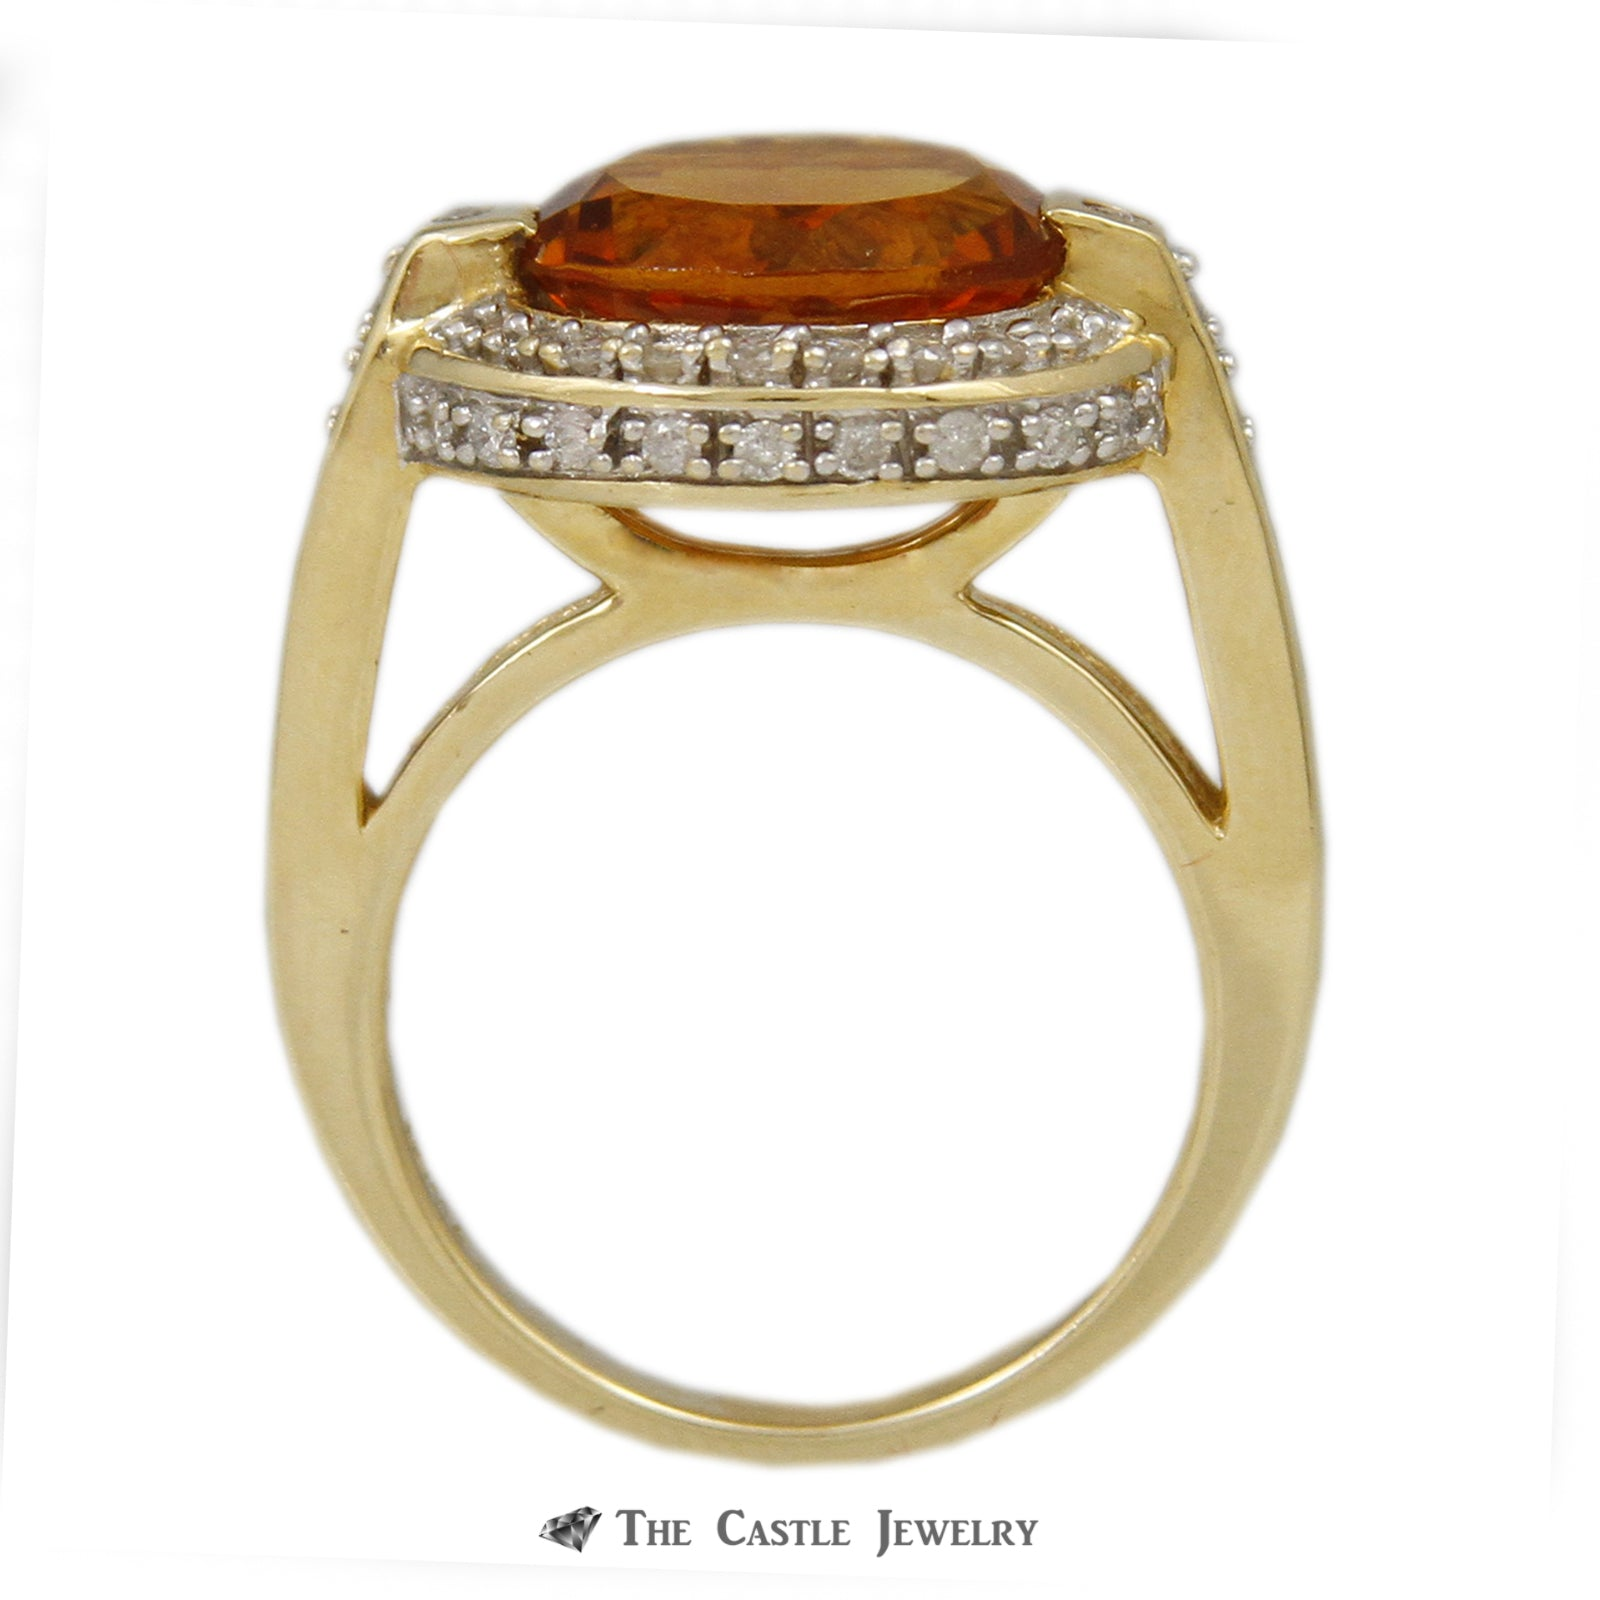 Oval Citrine Ring w/ 1/2cttw Diamond Bezel & Cathedral Mounting in 14k Yellow Gold-1